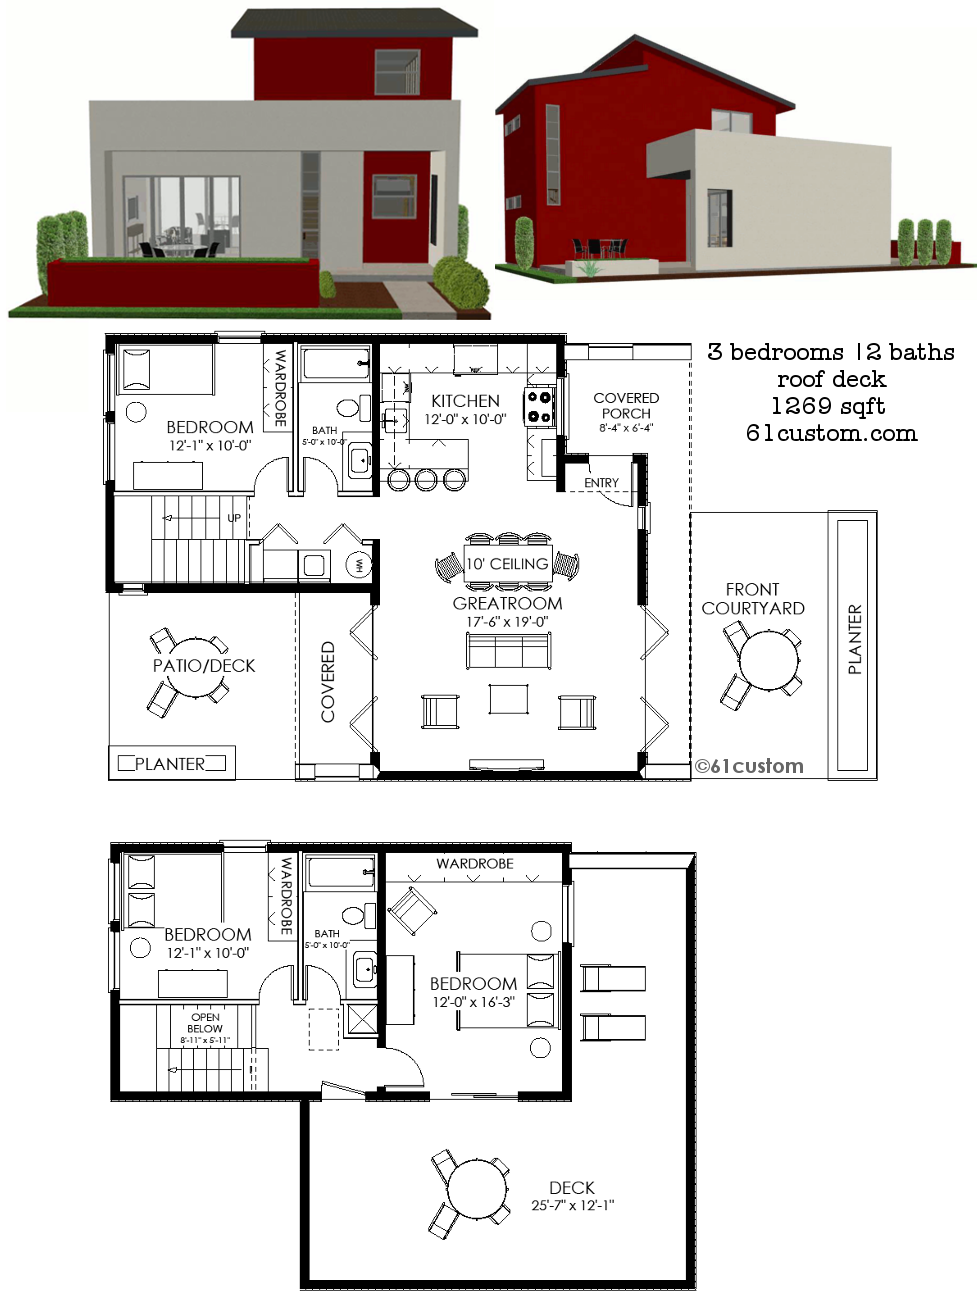 e4d434c733a84f455fde8656f34cd9e7 - Download Simple Small Modern House Design With Floor Plan Pics